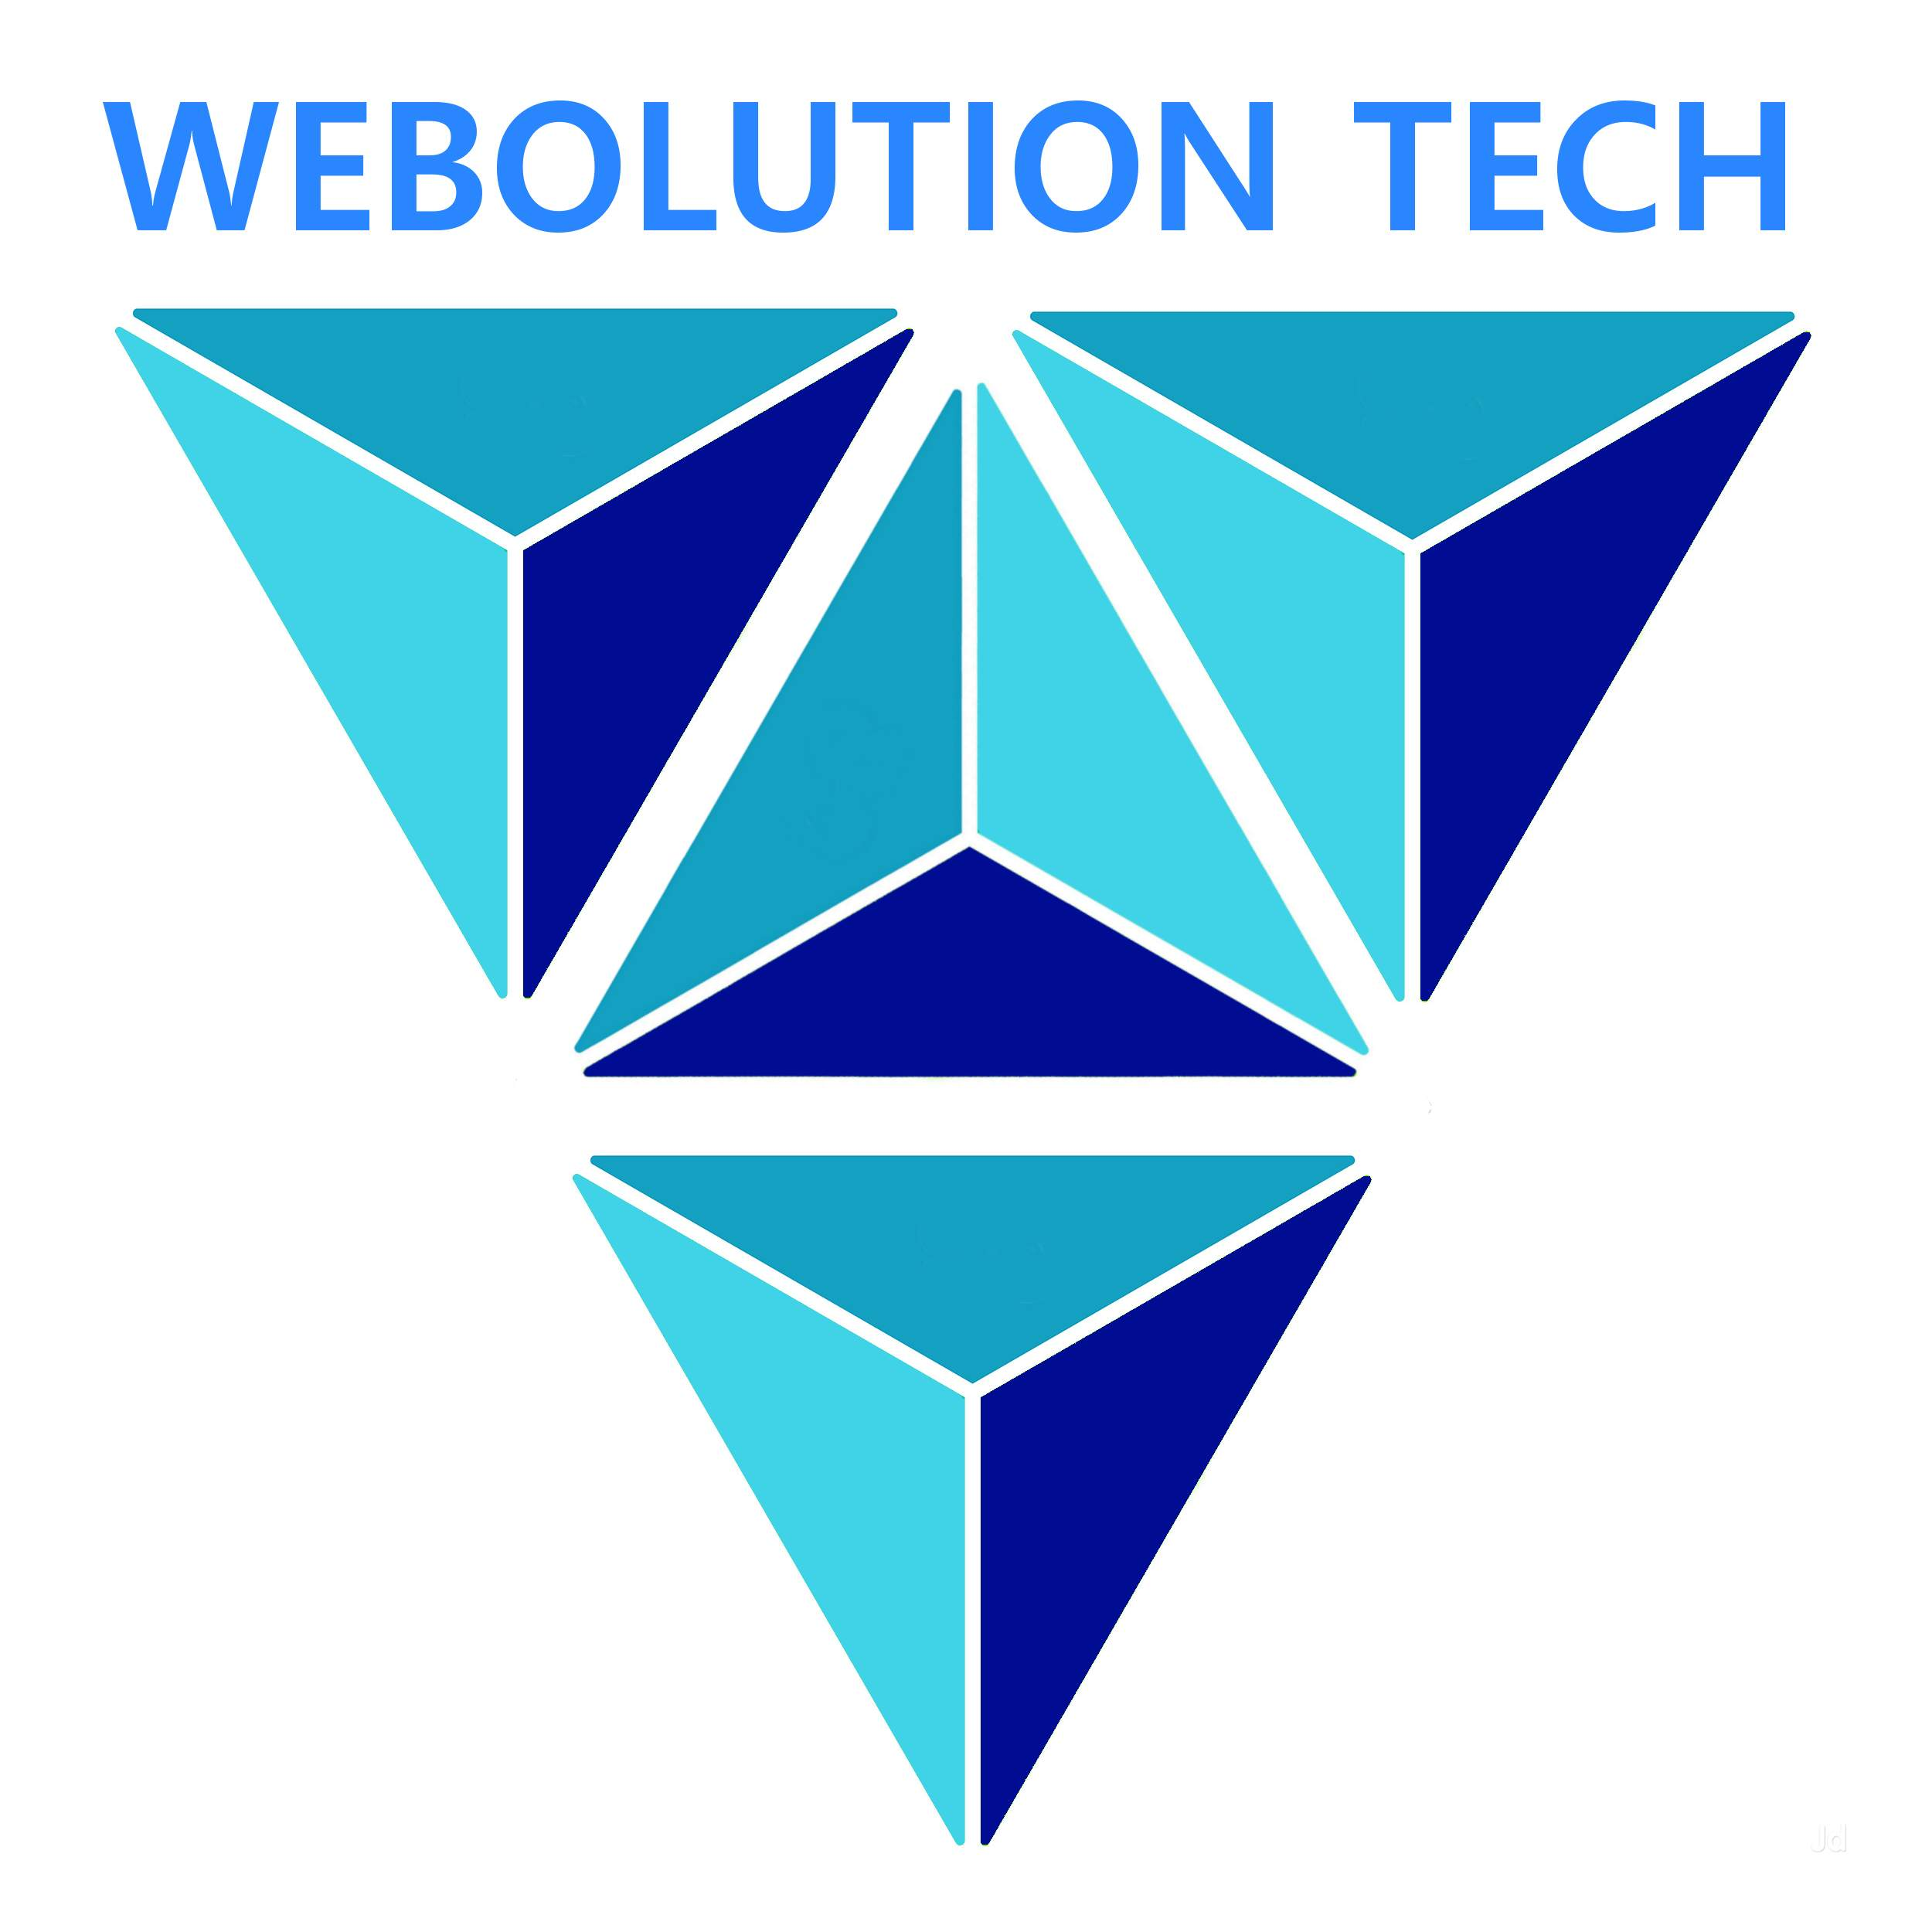 Webolution Tech